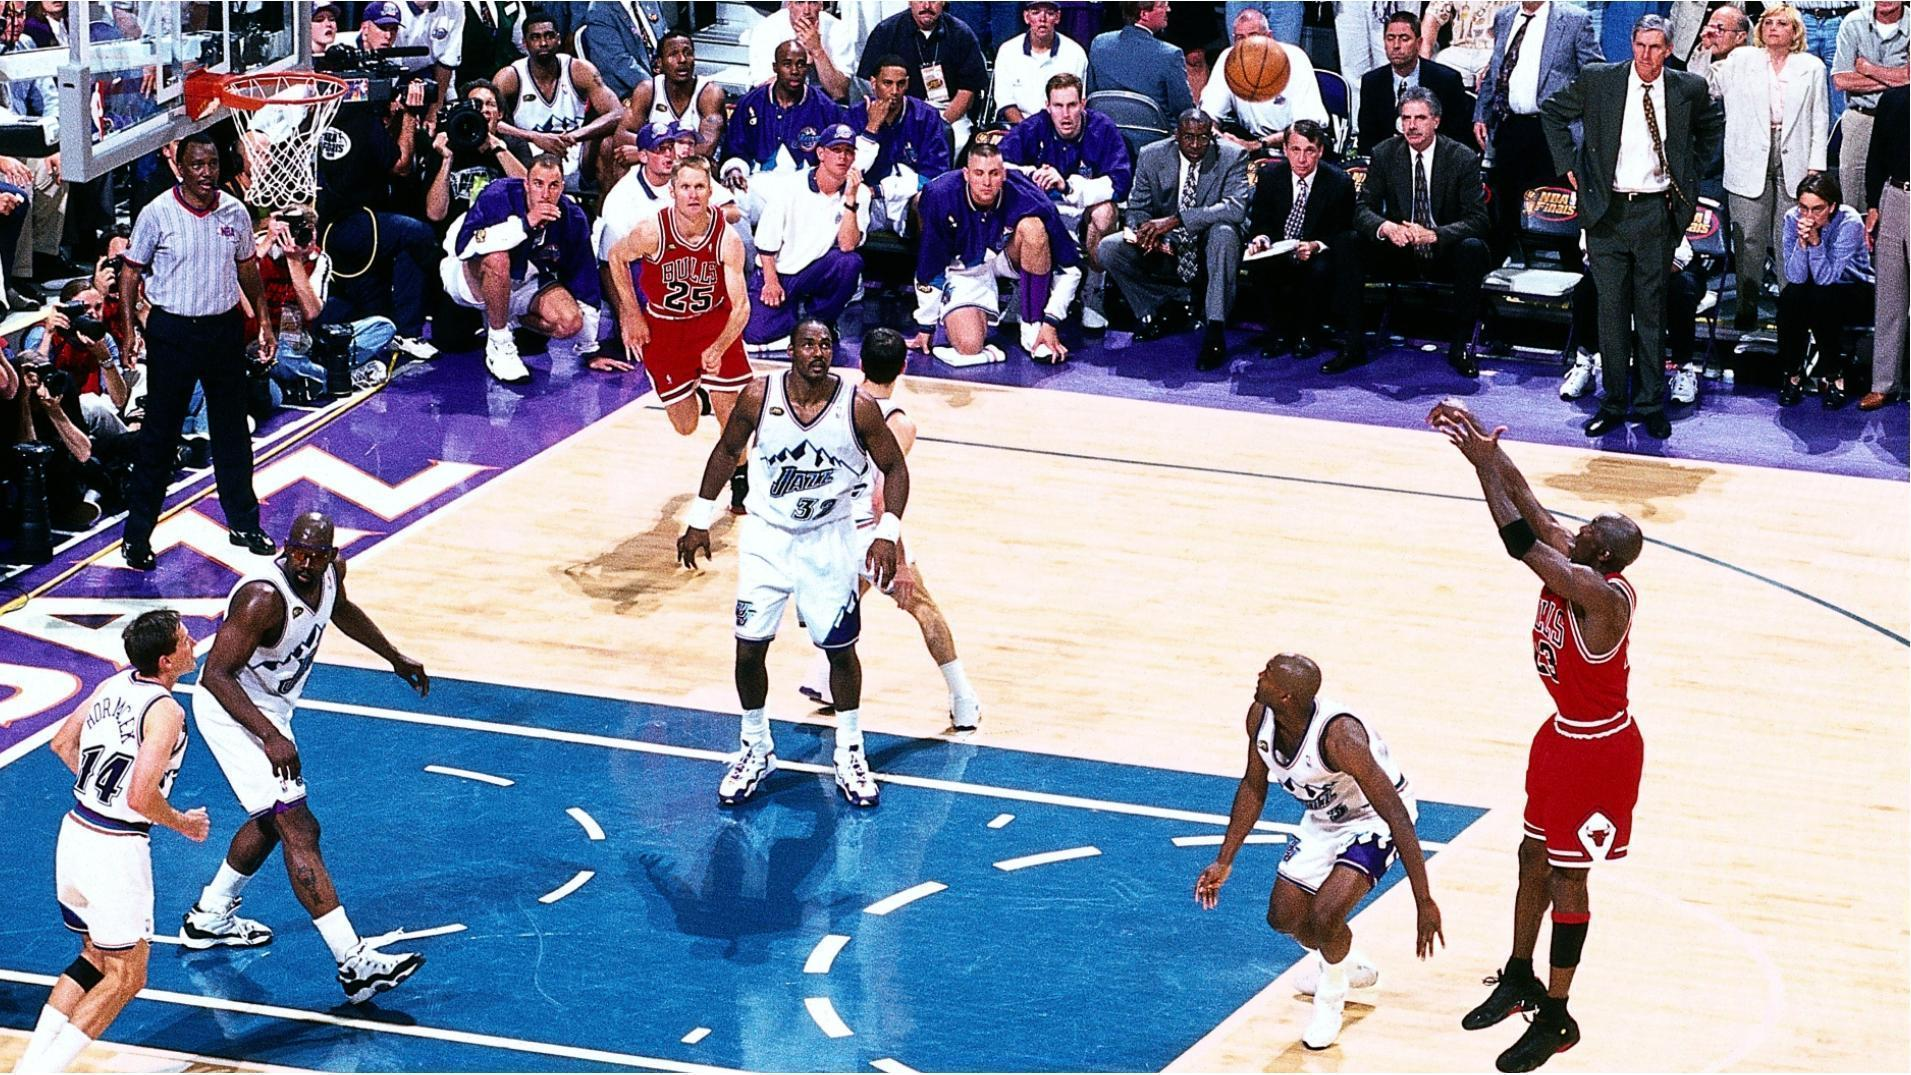 MJ's top 10 playoff moments